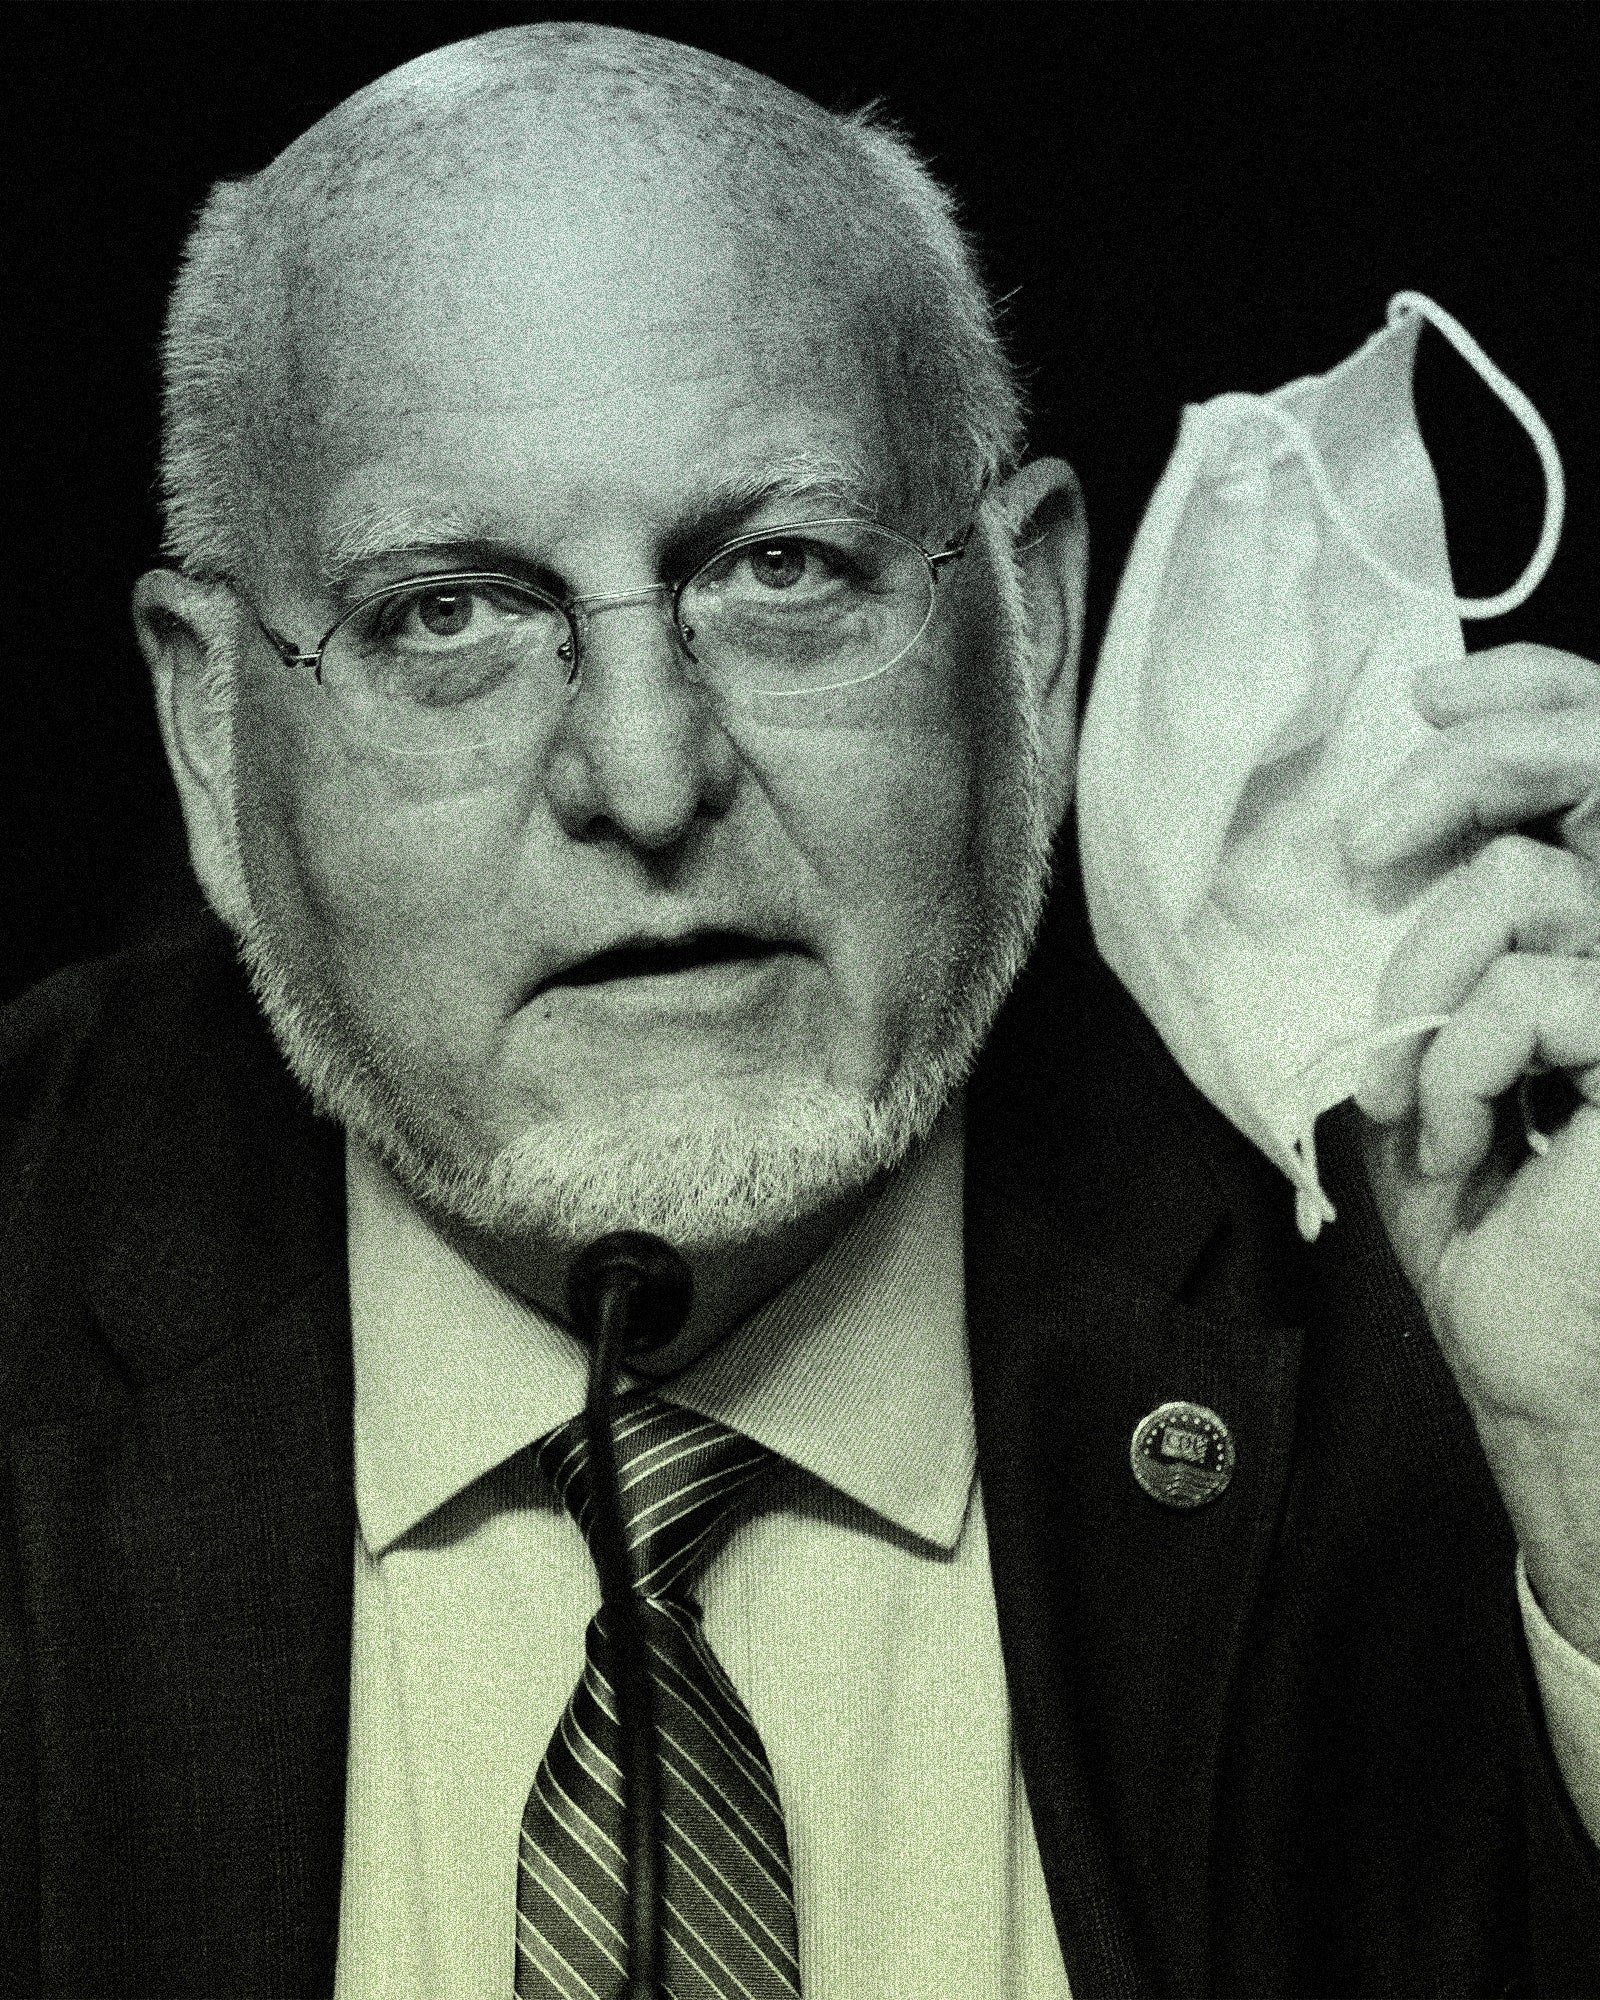 """Dr. Robert Redfield, former director of the CDC, said he received death threats from fellow scientists after telling CNN he thought the virus likely escaped from a lab. """"I expected it from politicians. I didn't expect it from science,"""" he said.By Andrew Harnik/Getty Images."""